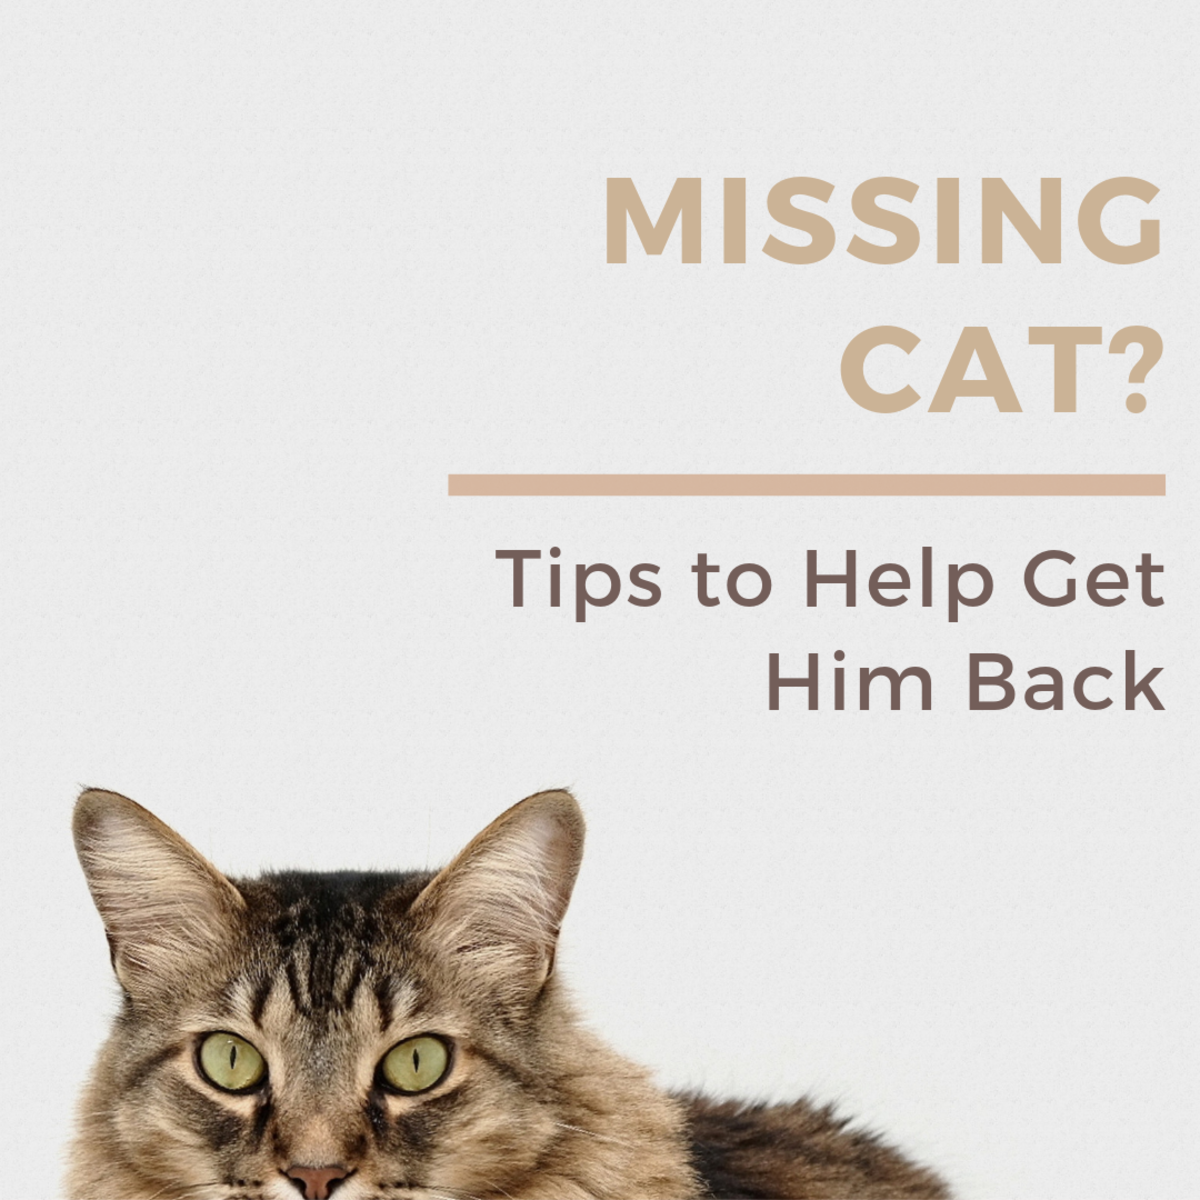 From putting up posters and walking the neighbourhood to plying social media with missing-cat posts, there are lots of effective ways to look for a lost cat.